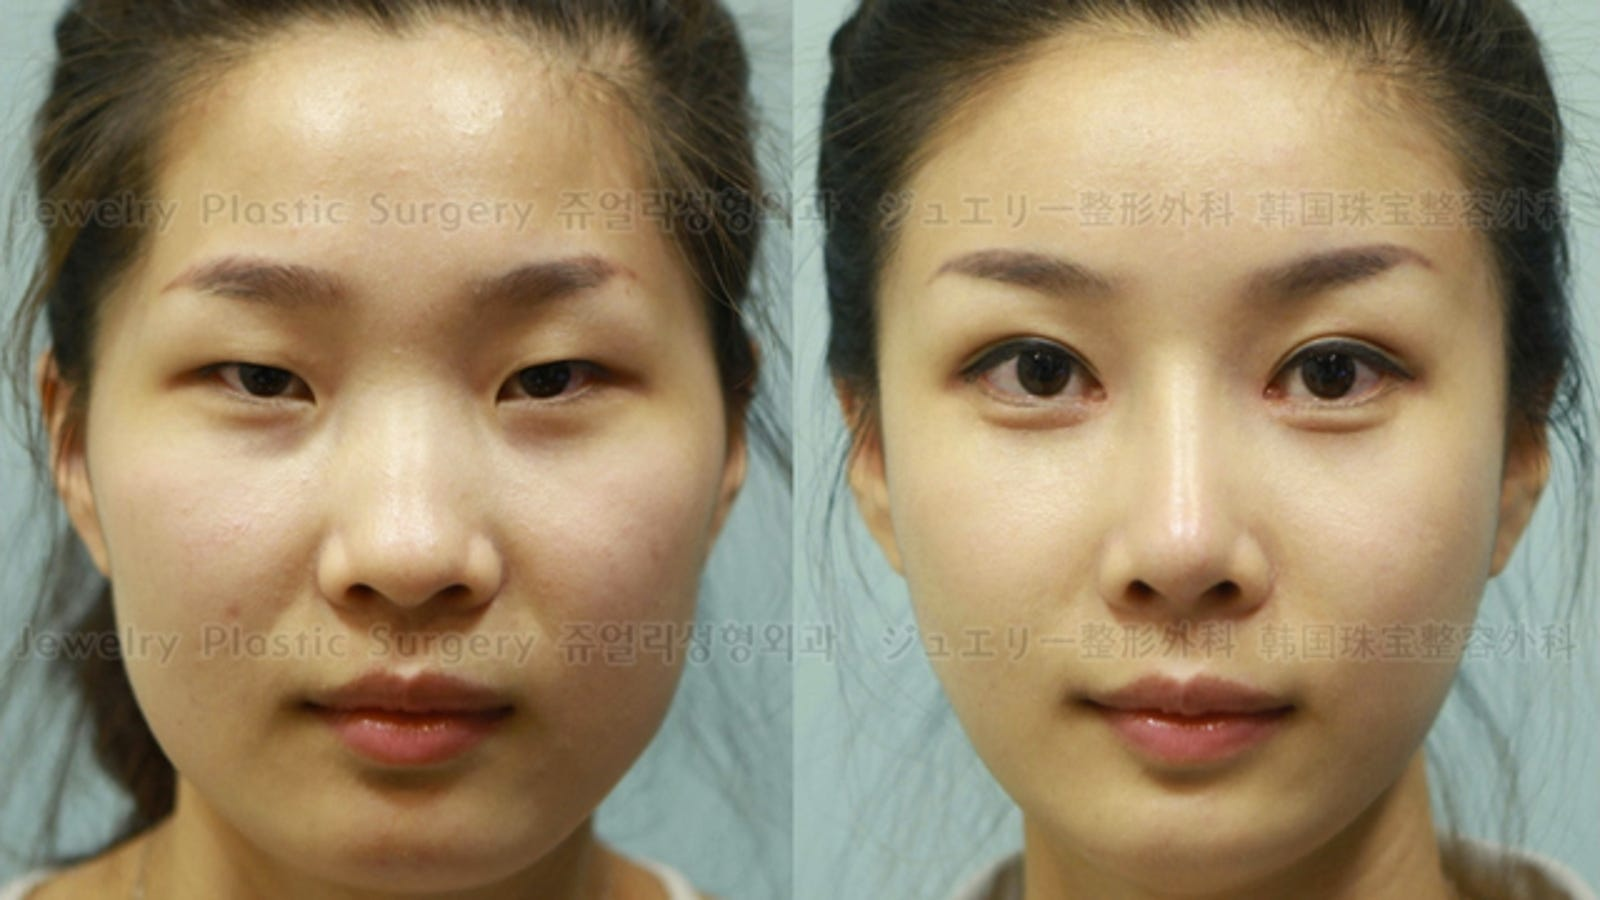 pictures Plastic surgery requests increase